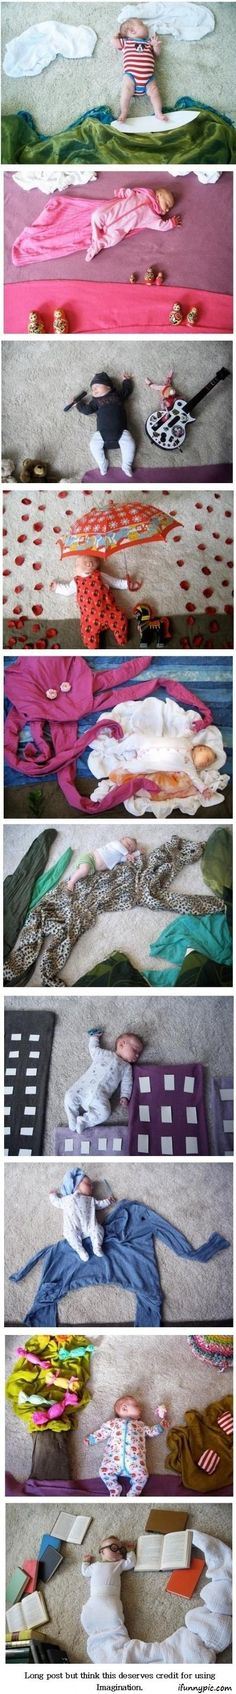 So cute and so creative. I hope my future baby will stay asleep like this.